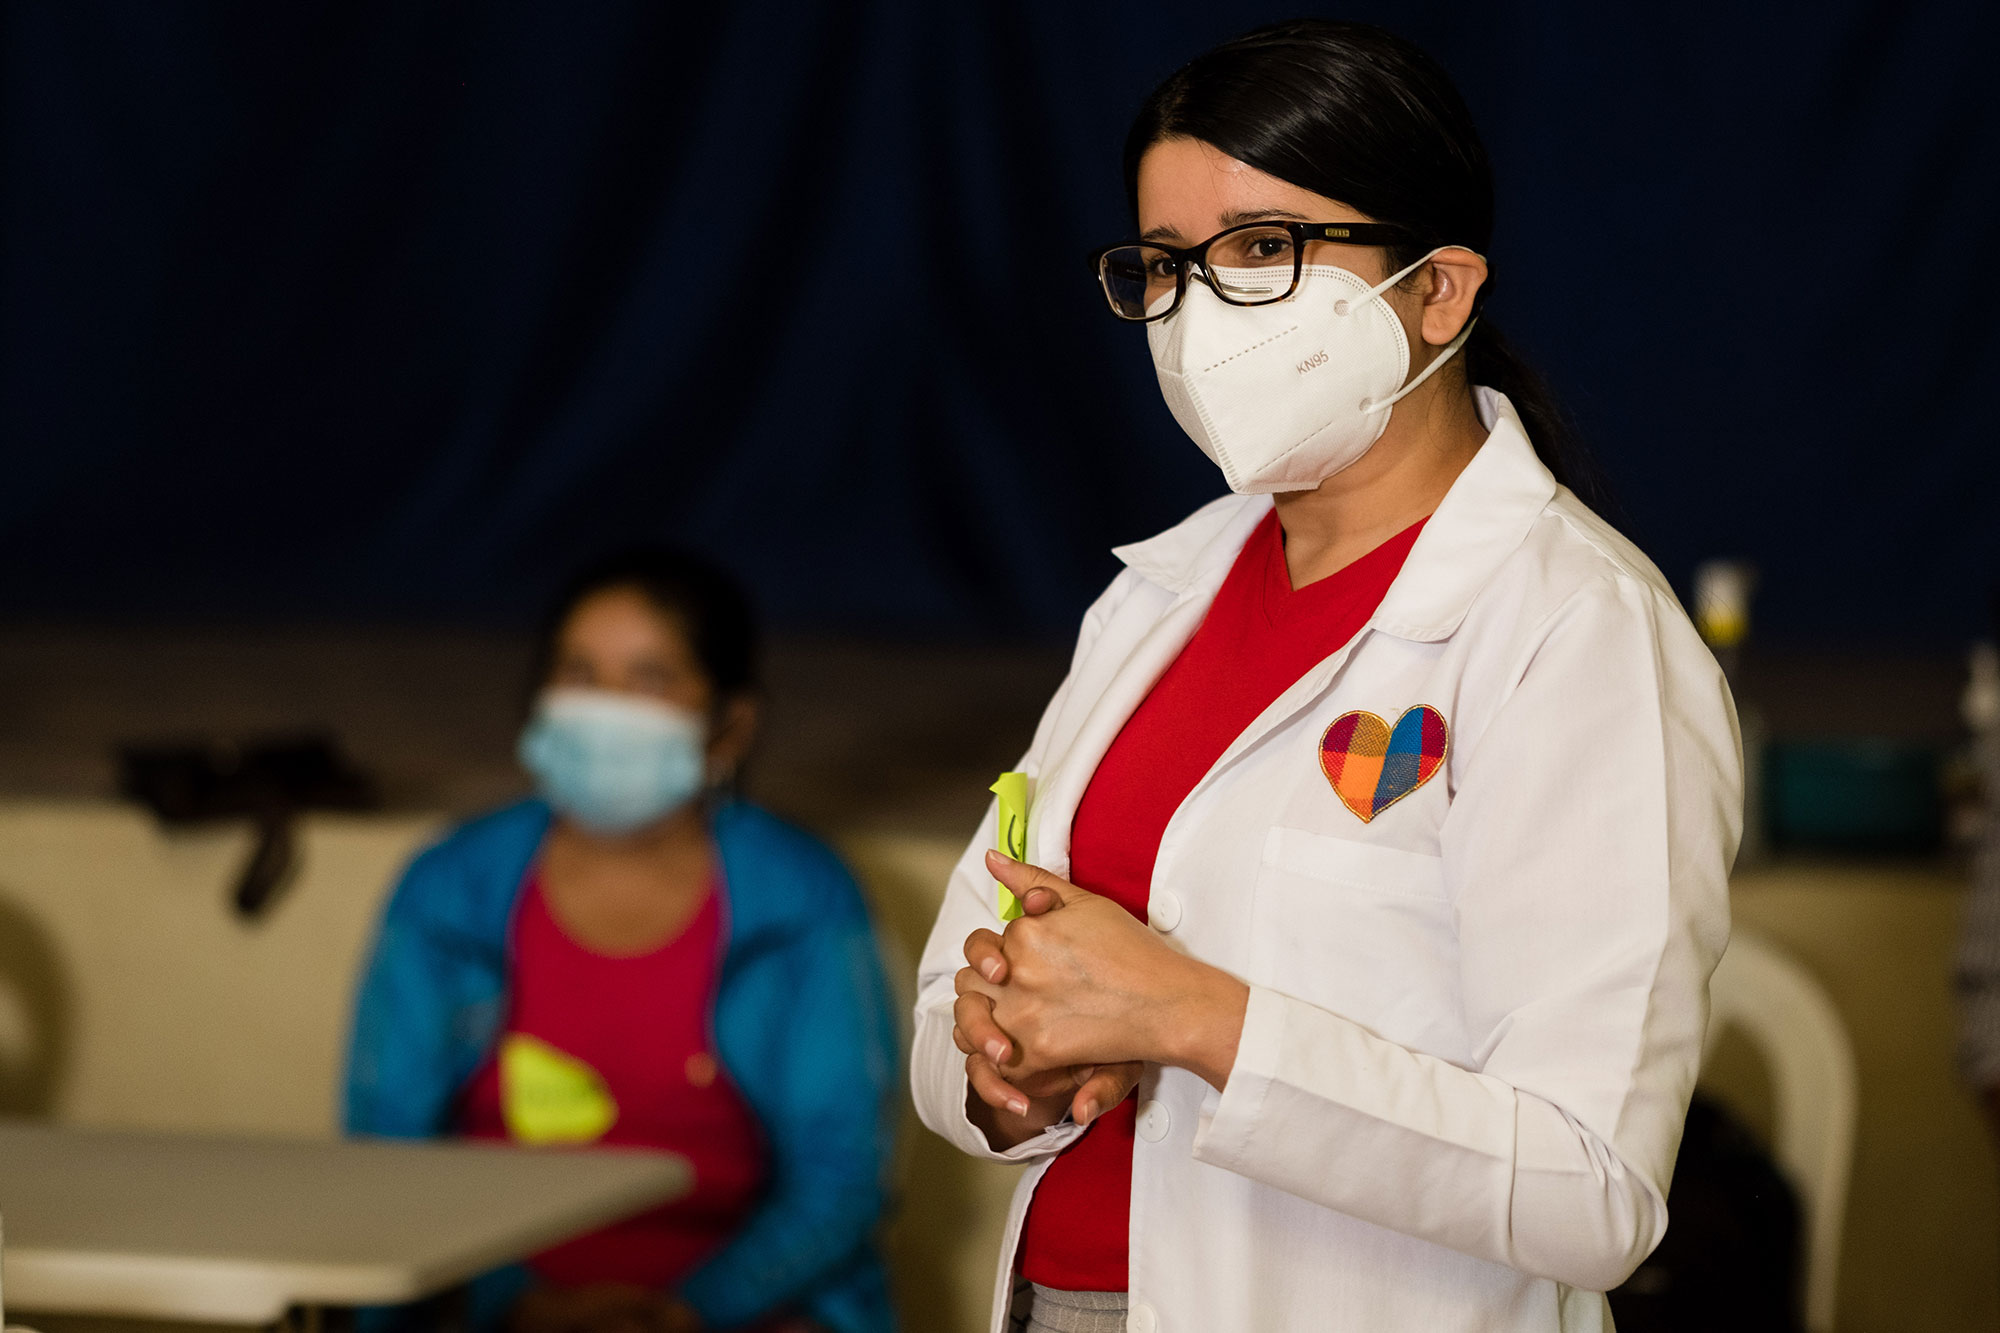 a woman in a lab coat and surgical mask stands.